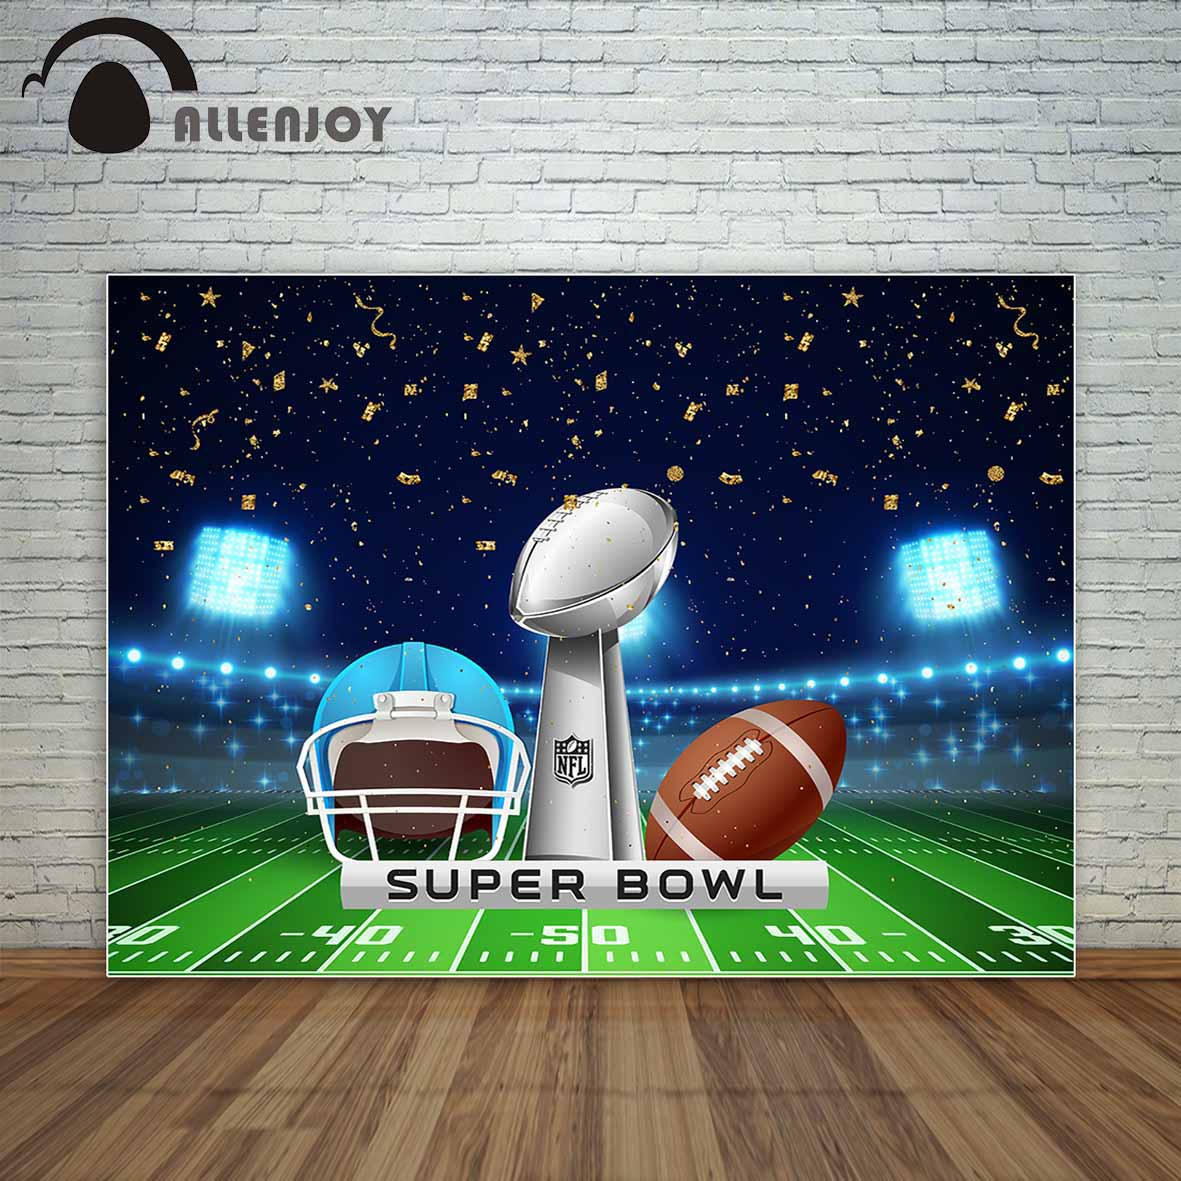 Allenjoy American football stadium field with helmet football and trophy golden ribbons backdrop cloths photography vinyl